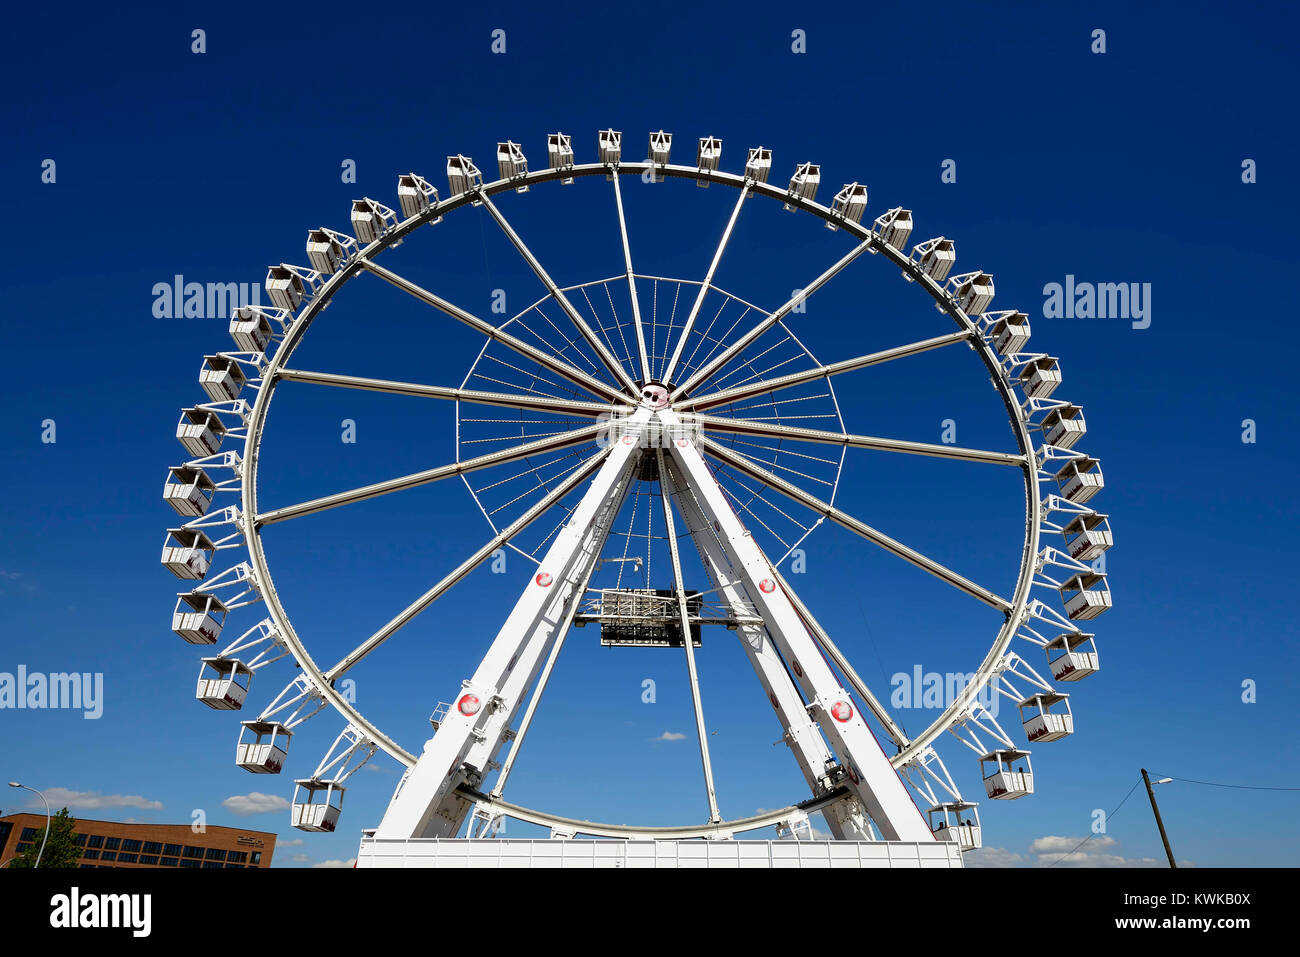 Big dipper in the beach quay in the harbour city of Hamburg, Germany, Europe, Riesenrad am Strandkai in der Hafencity - Stock Image